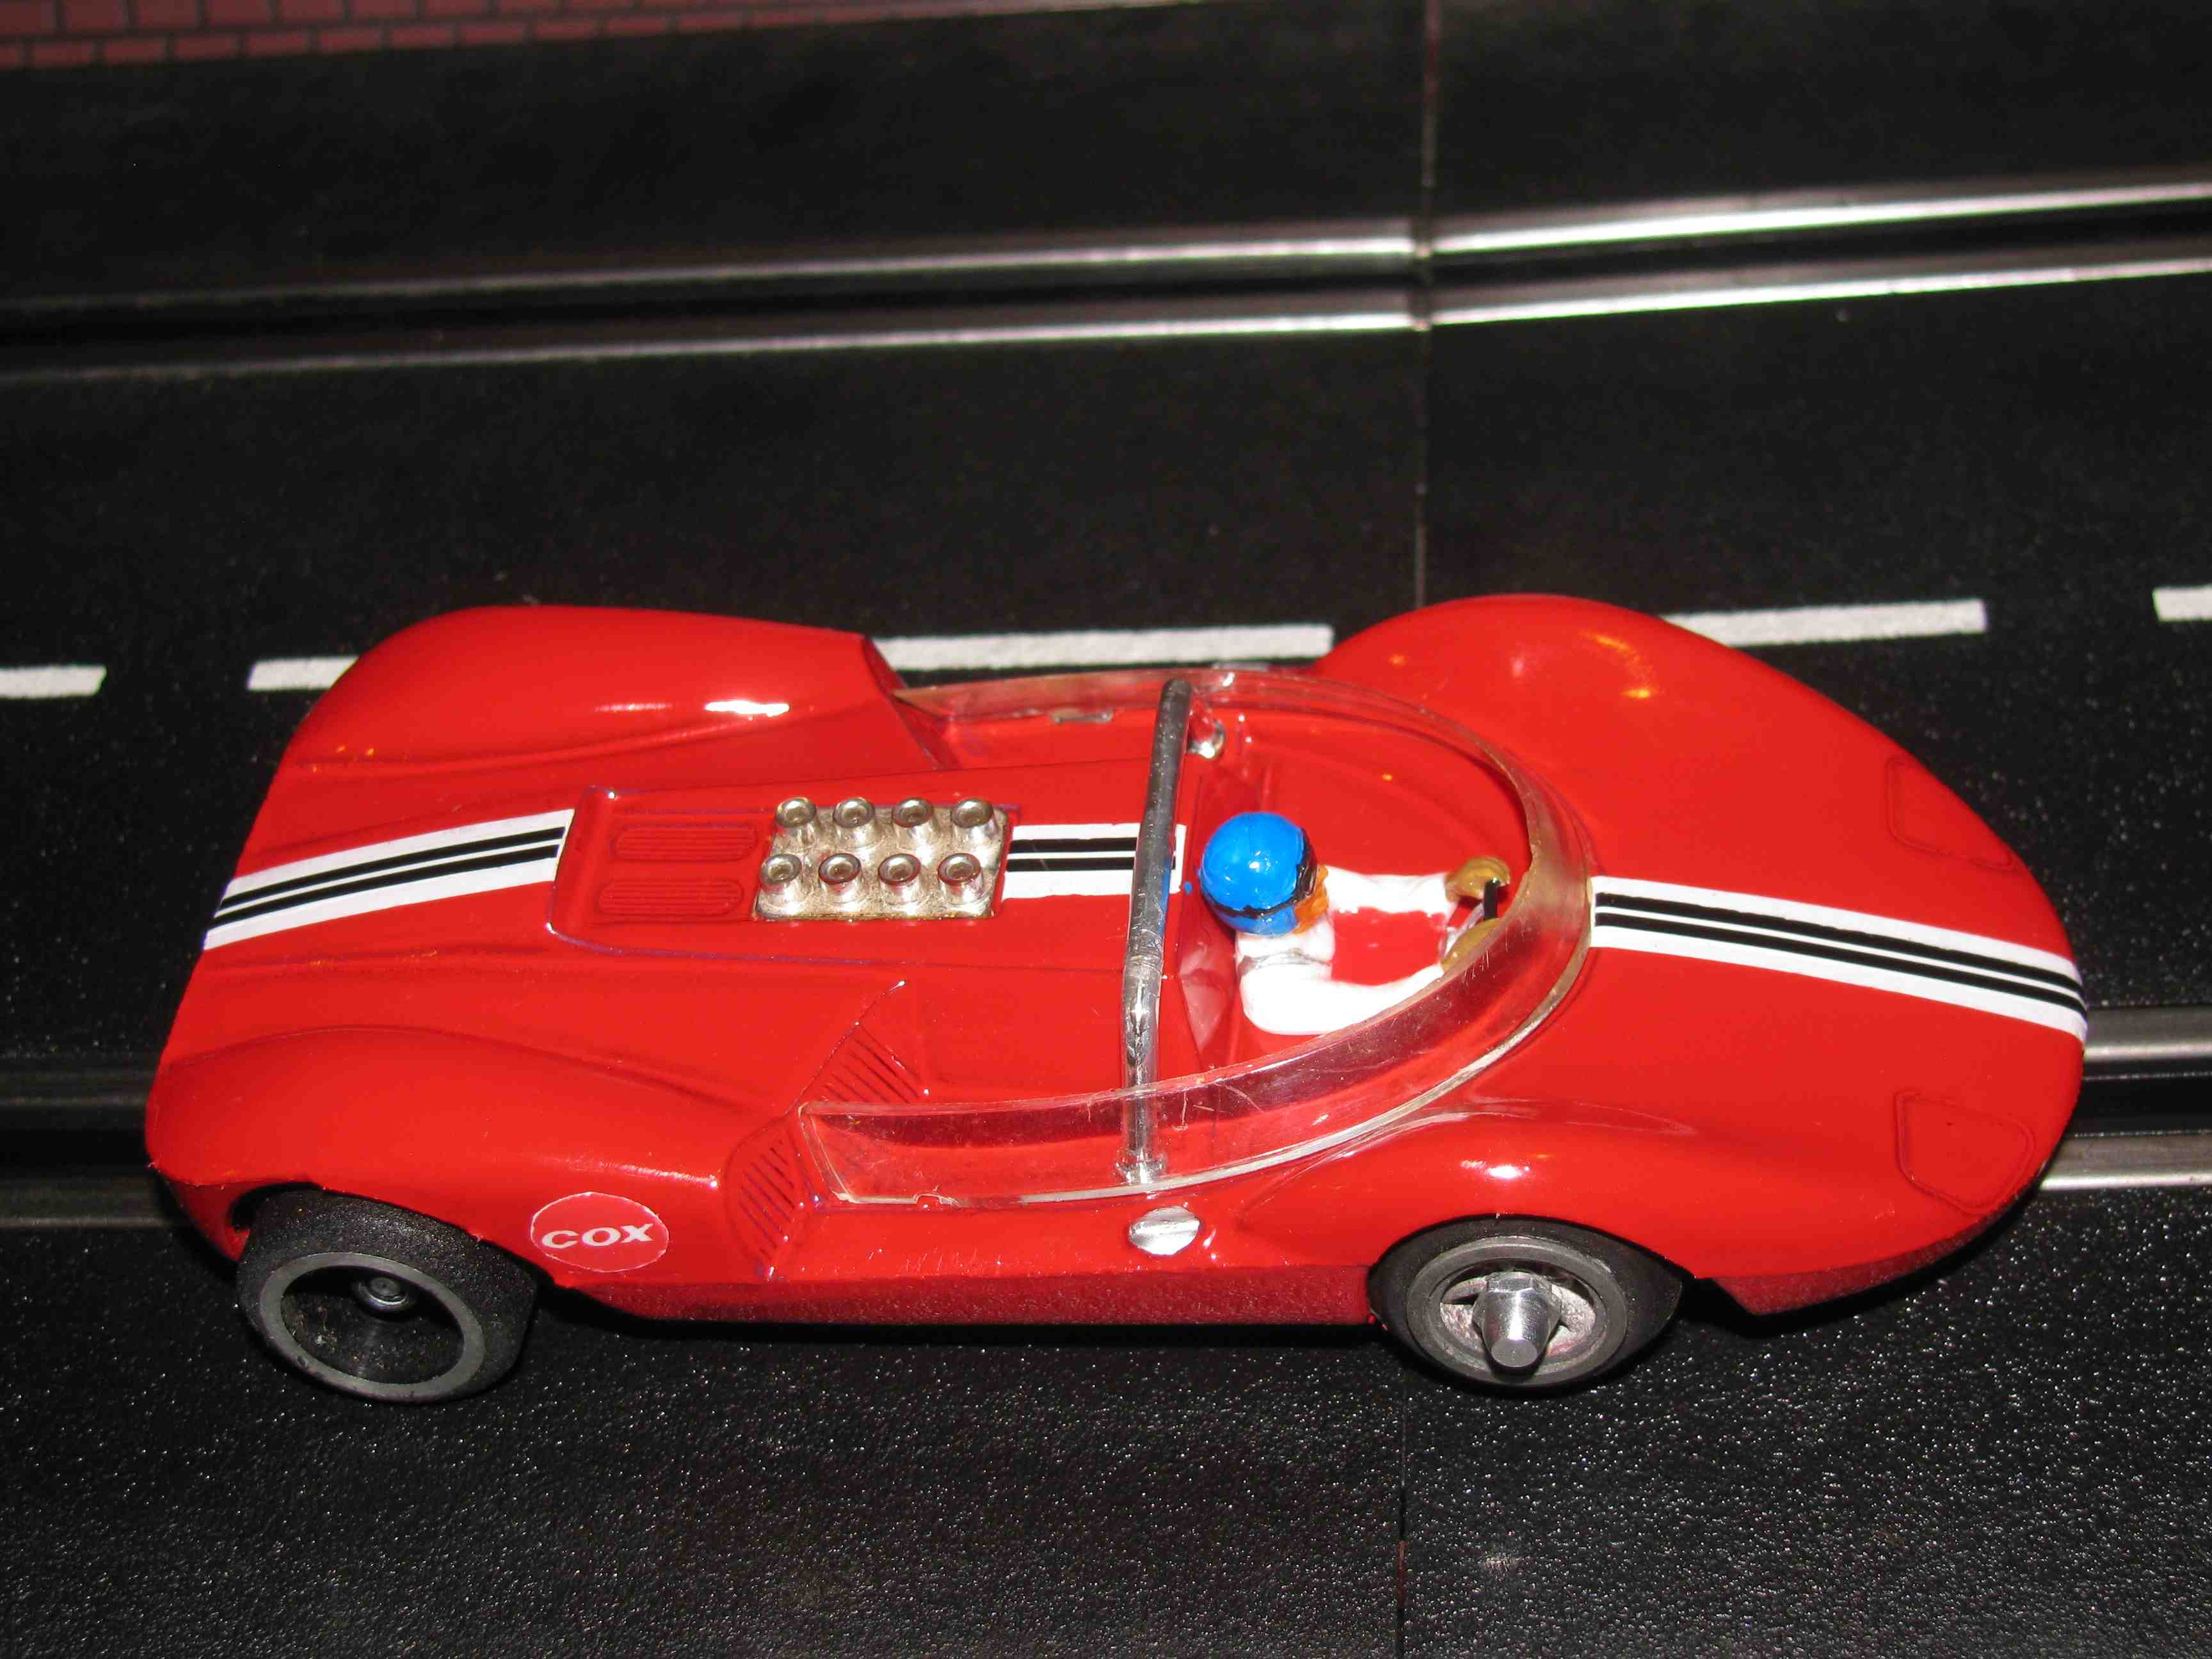 * SOLD * Lil Cucaracha Red Racer Slot Car 1/32 Scale